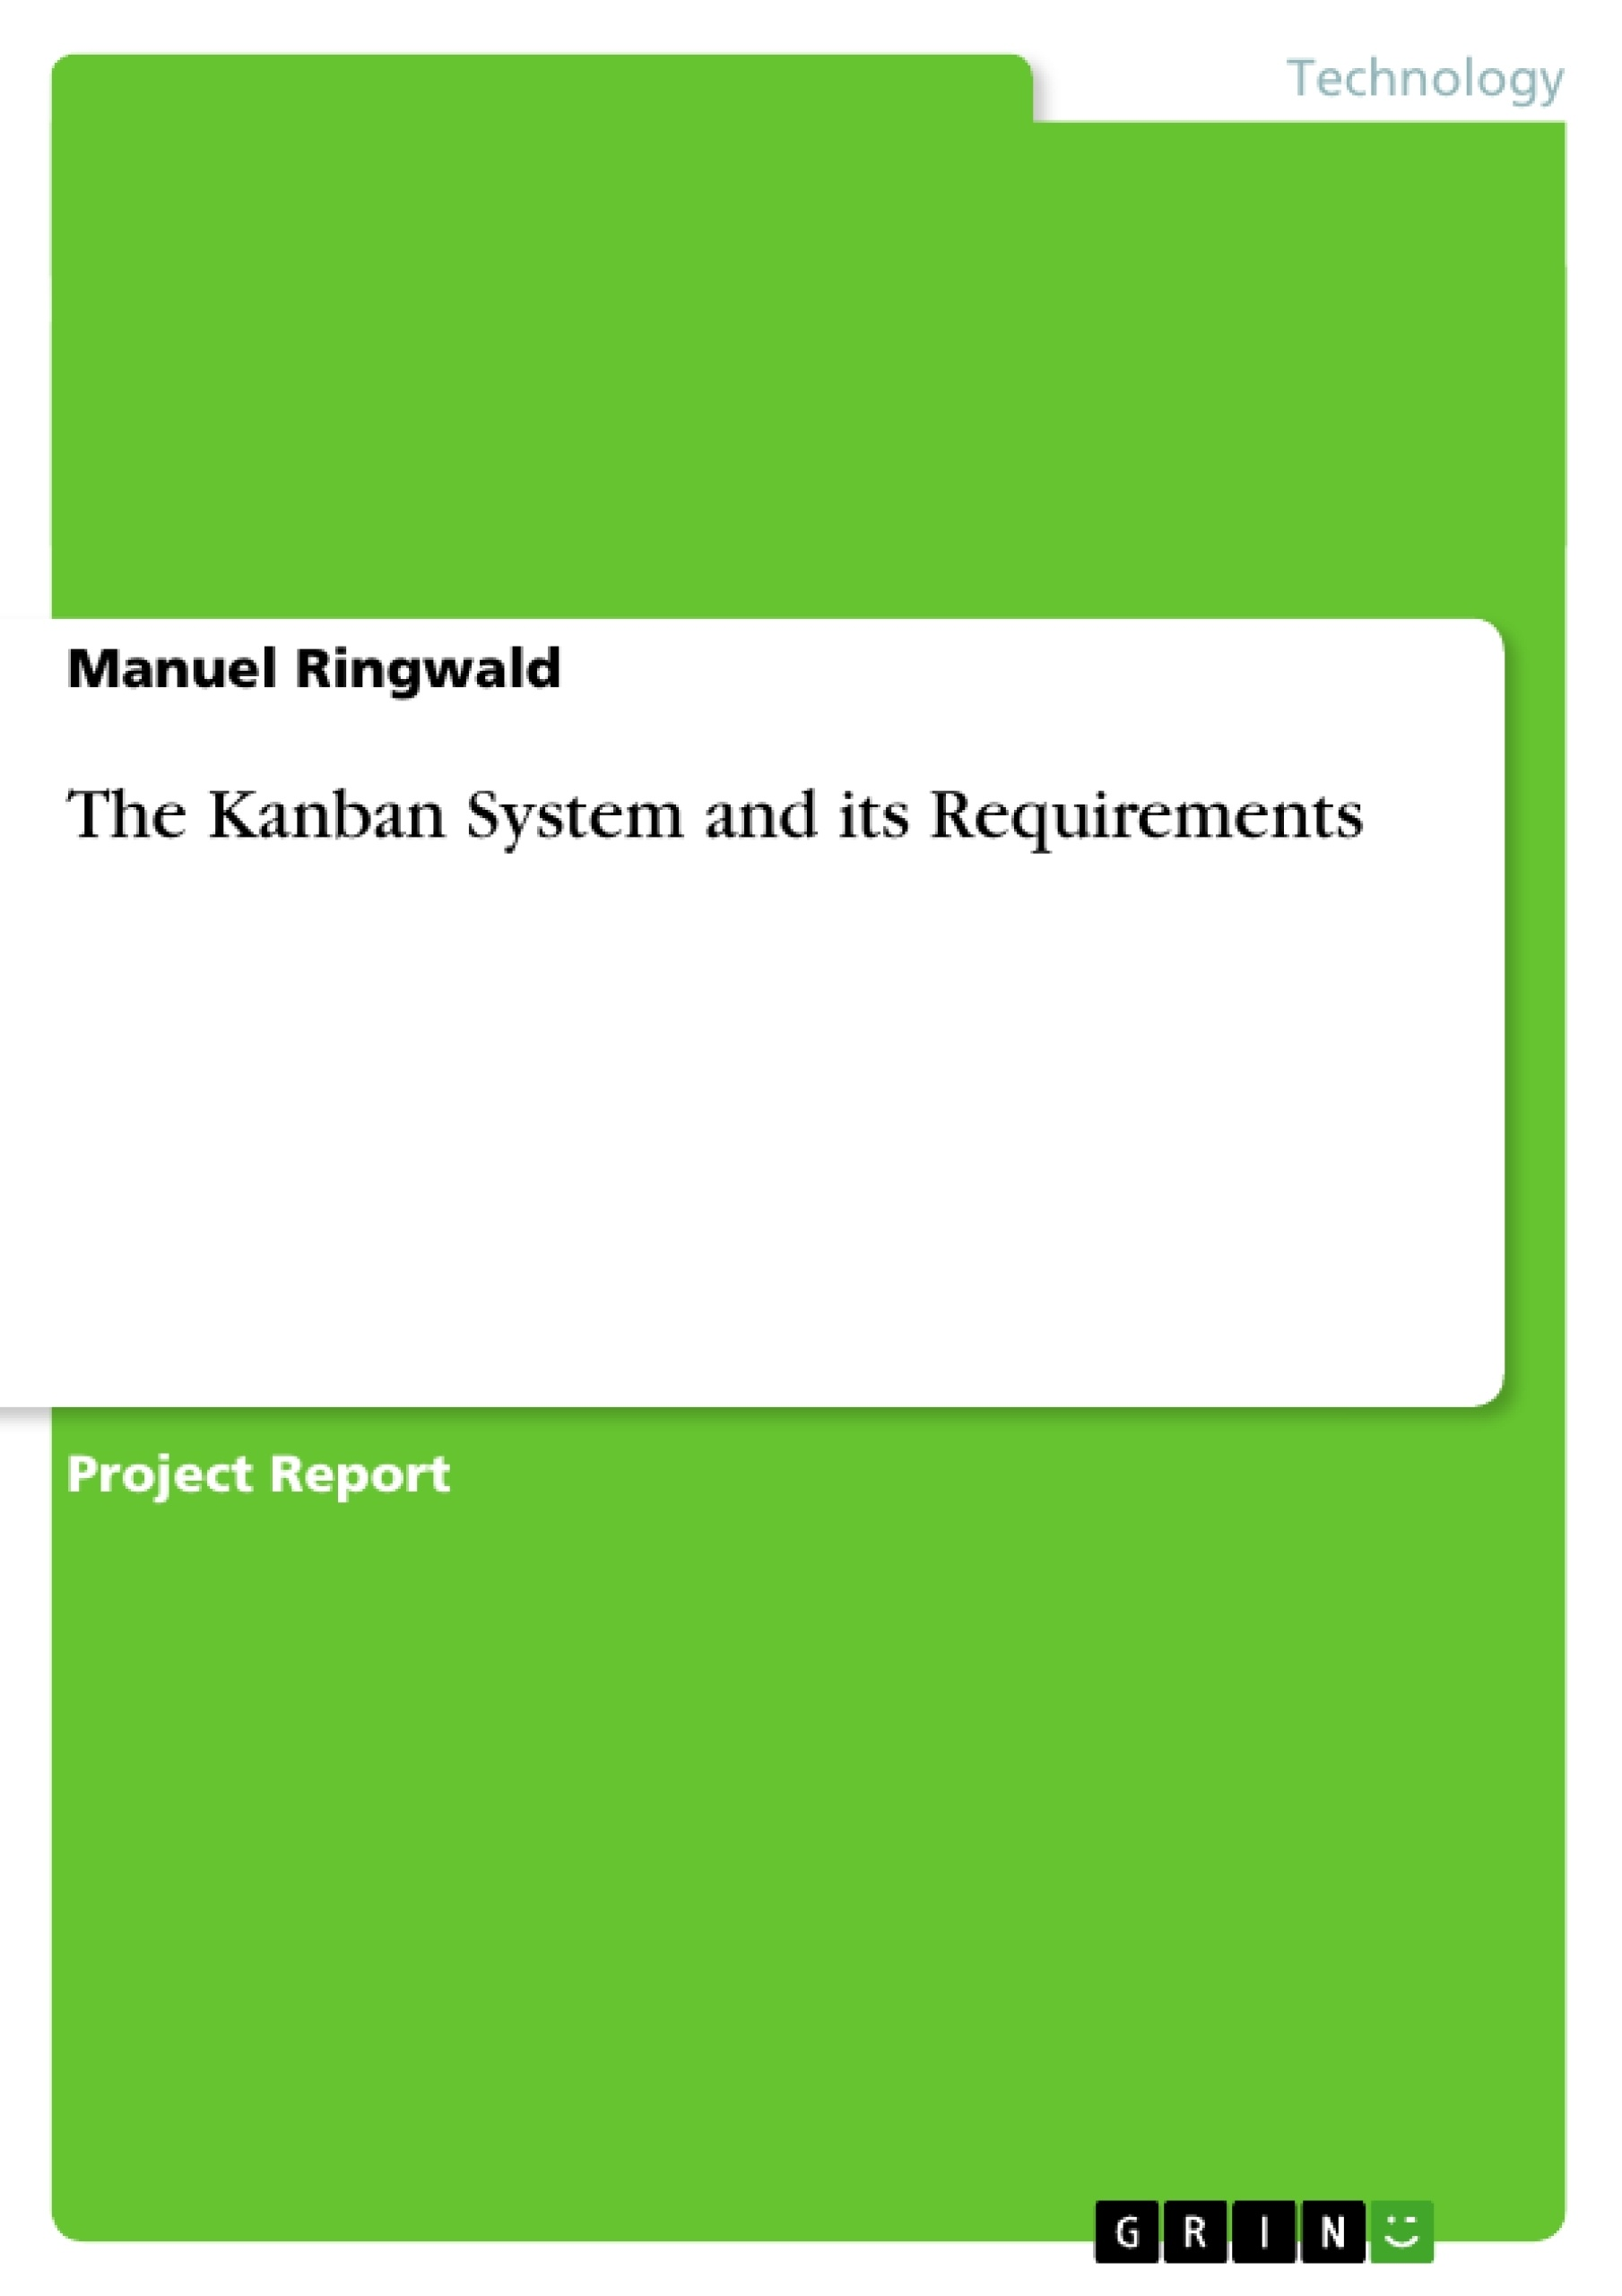 Title: The Kanban System and its Requirements